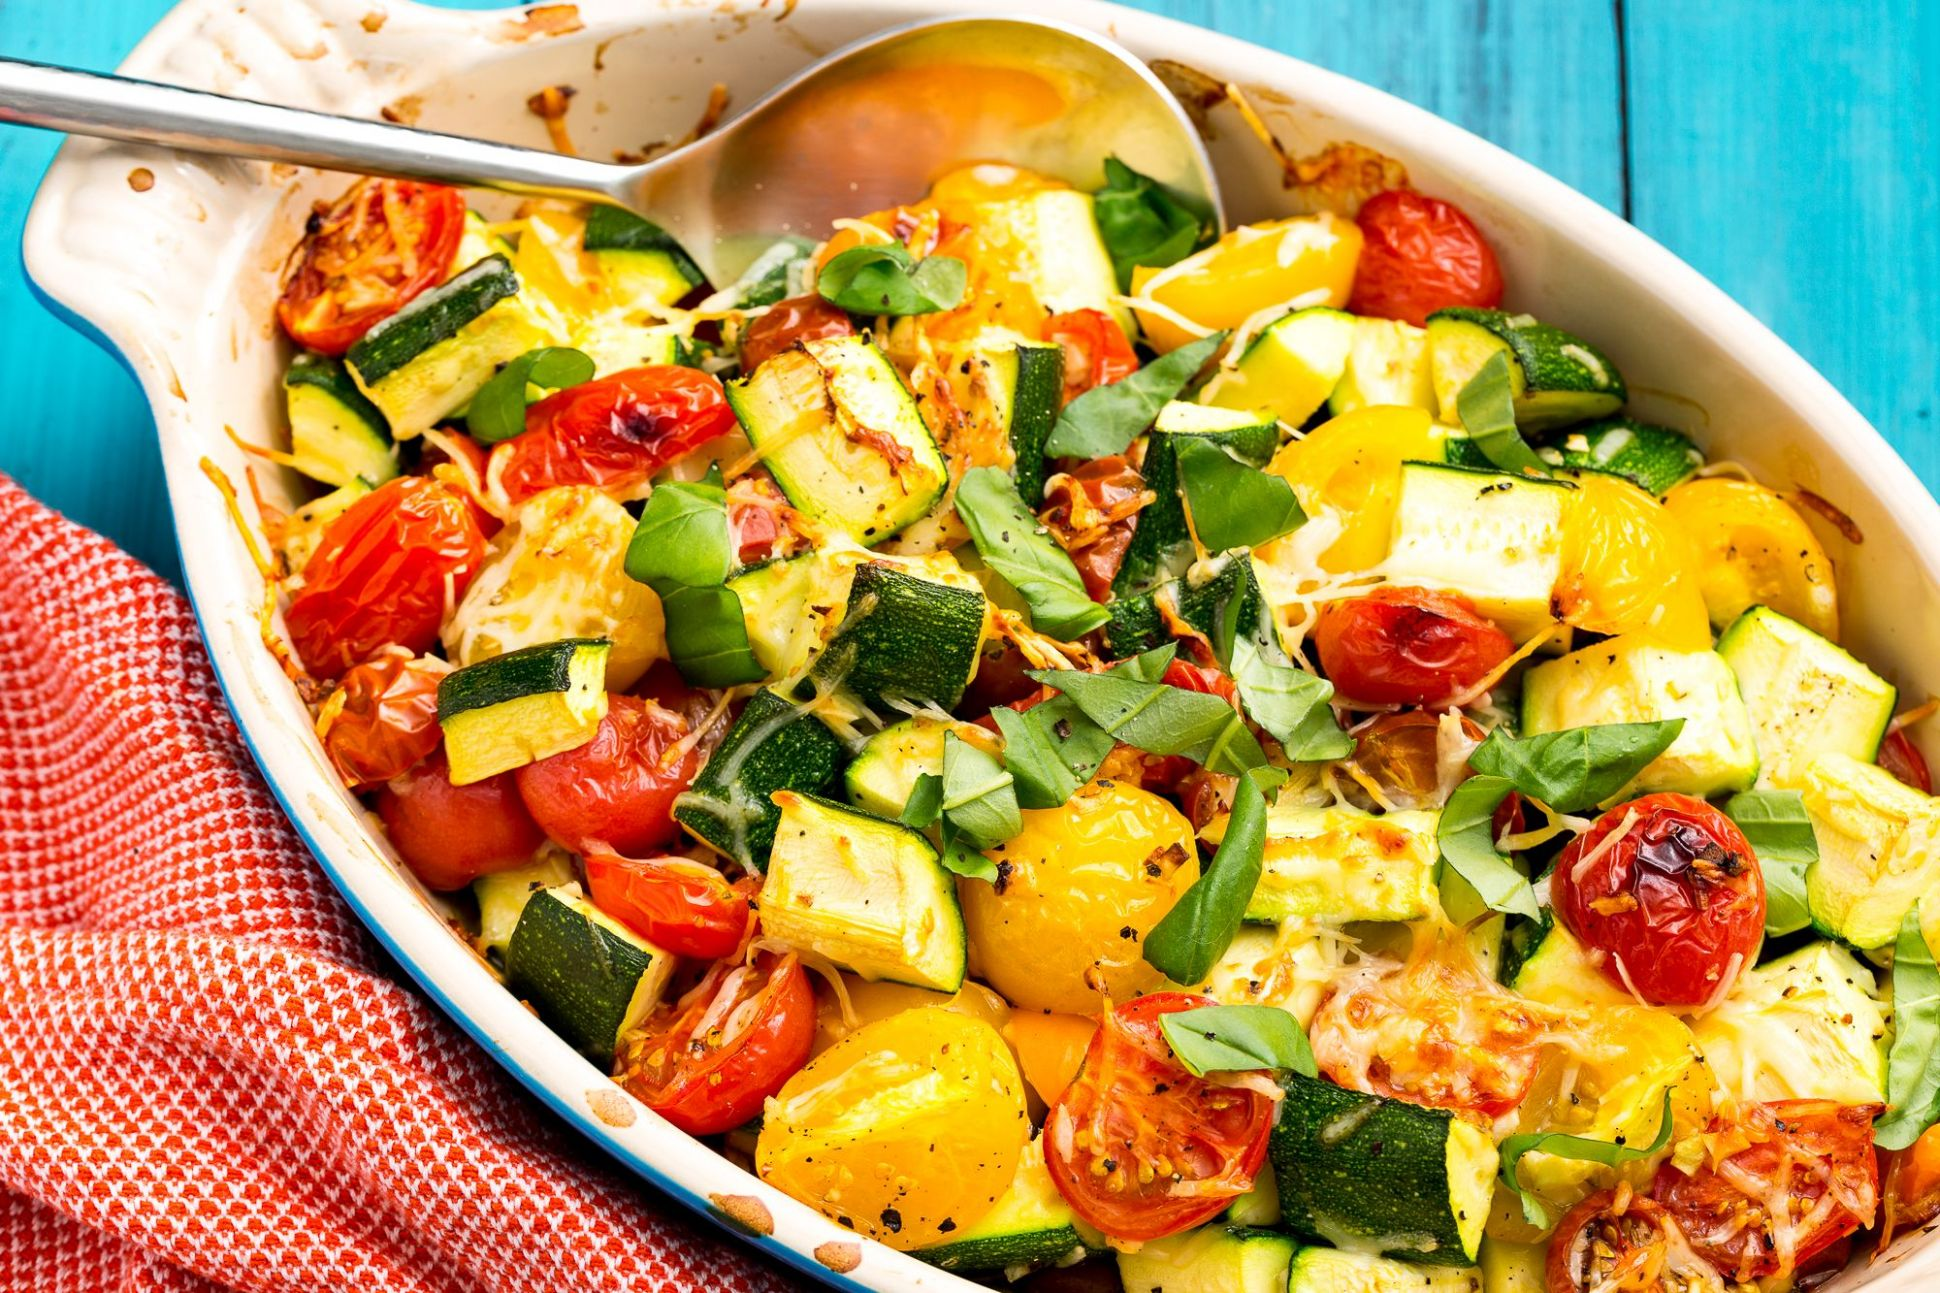 10+ Easy Summer Vegetable Recipes - Cooking with Fresh Summer ...